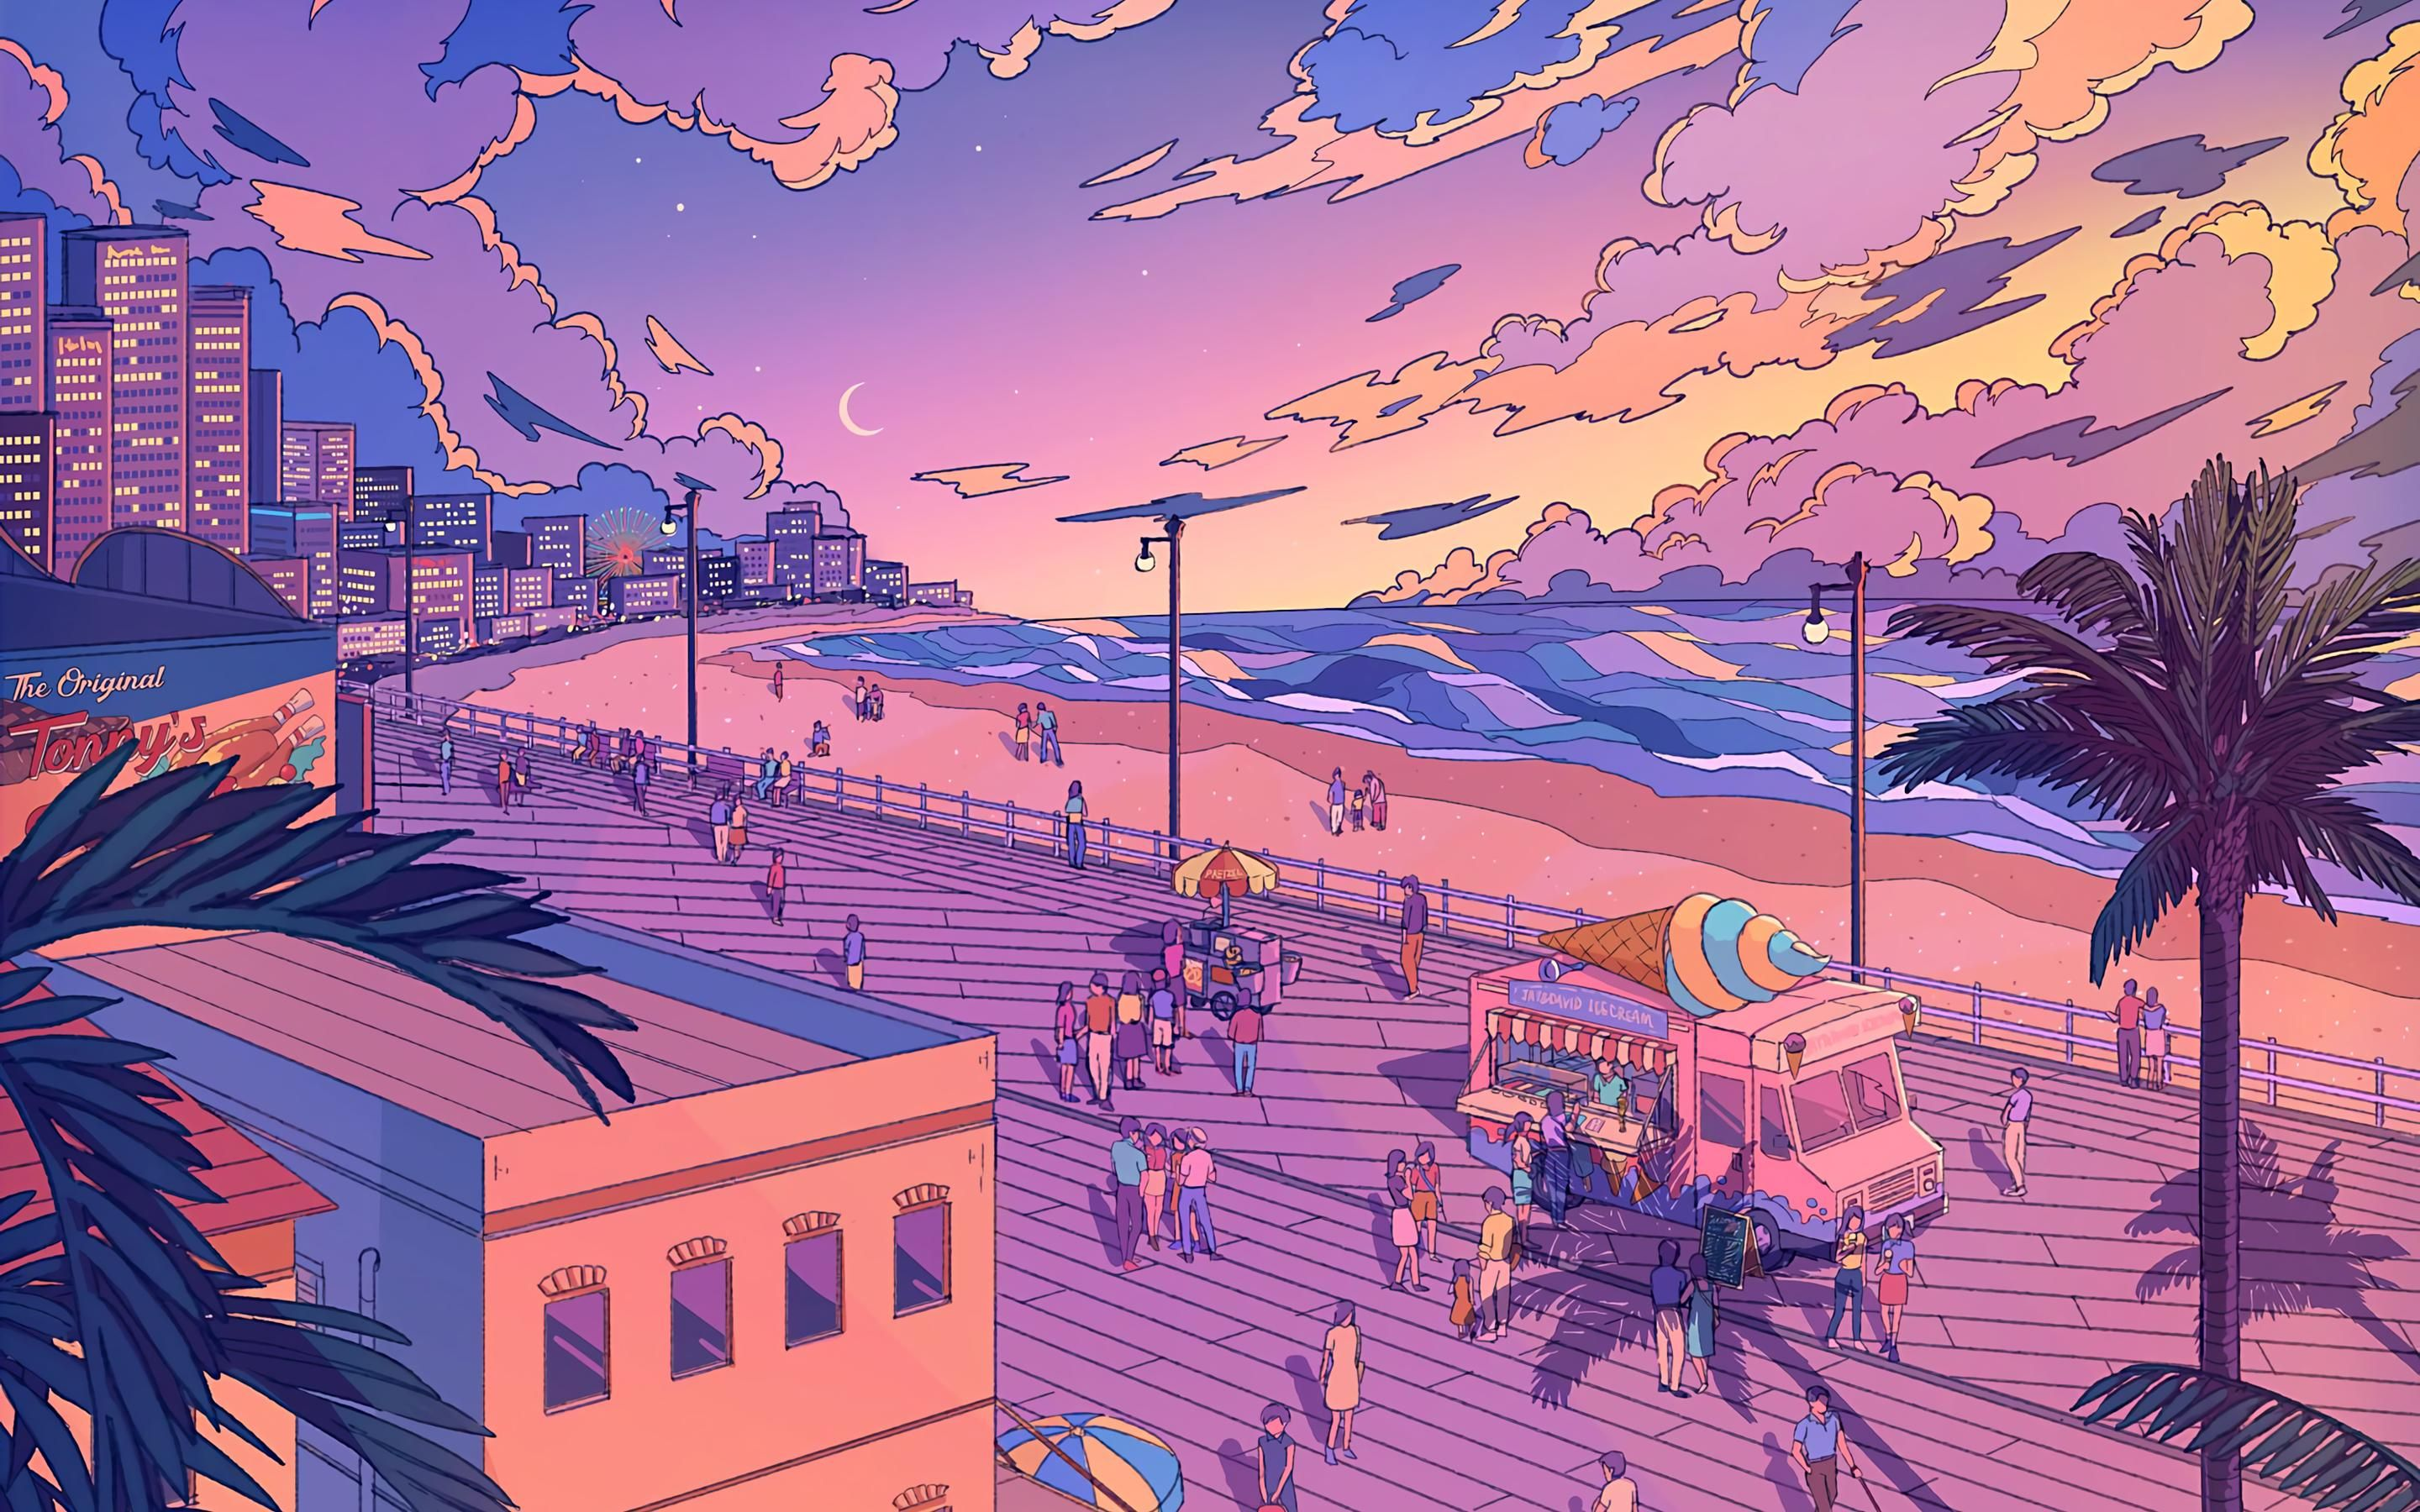 Aesthetic Beach By Midwinterdawn 2880x1800 Beach Aesthetic Aesthetic Wallpapers Calming Pictures Aesthetic anime mac wallpaper